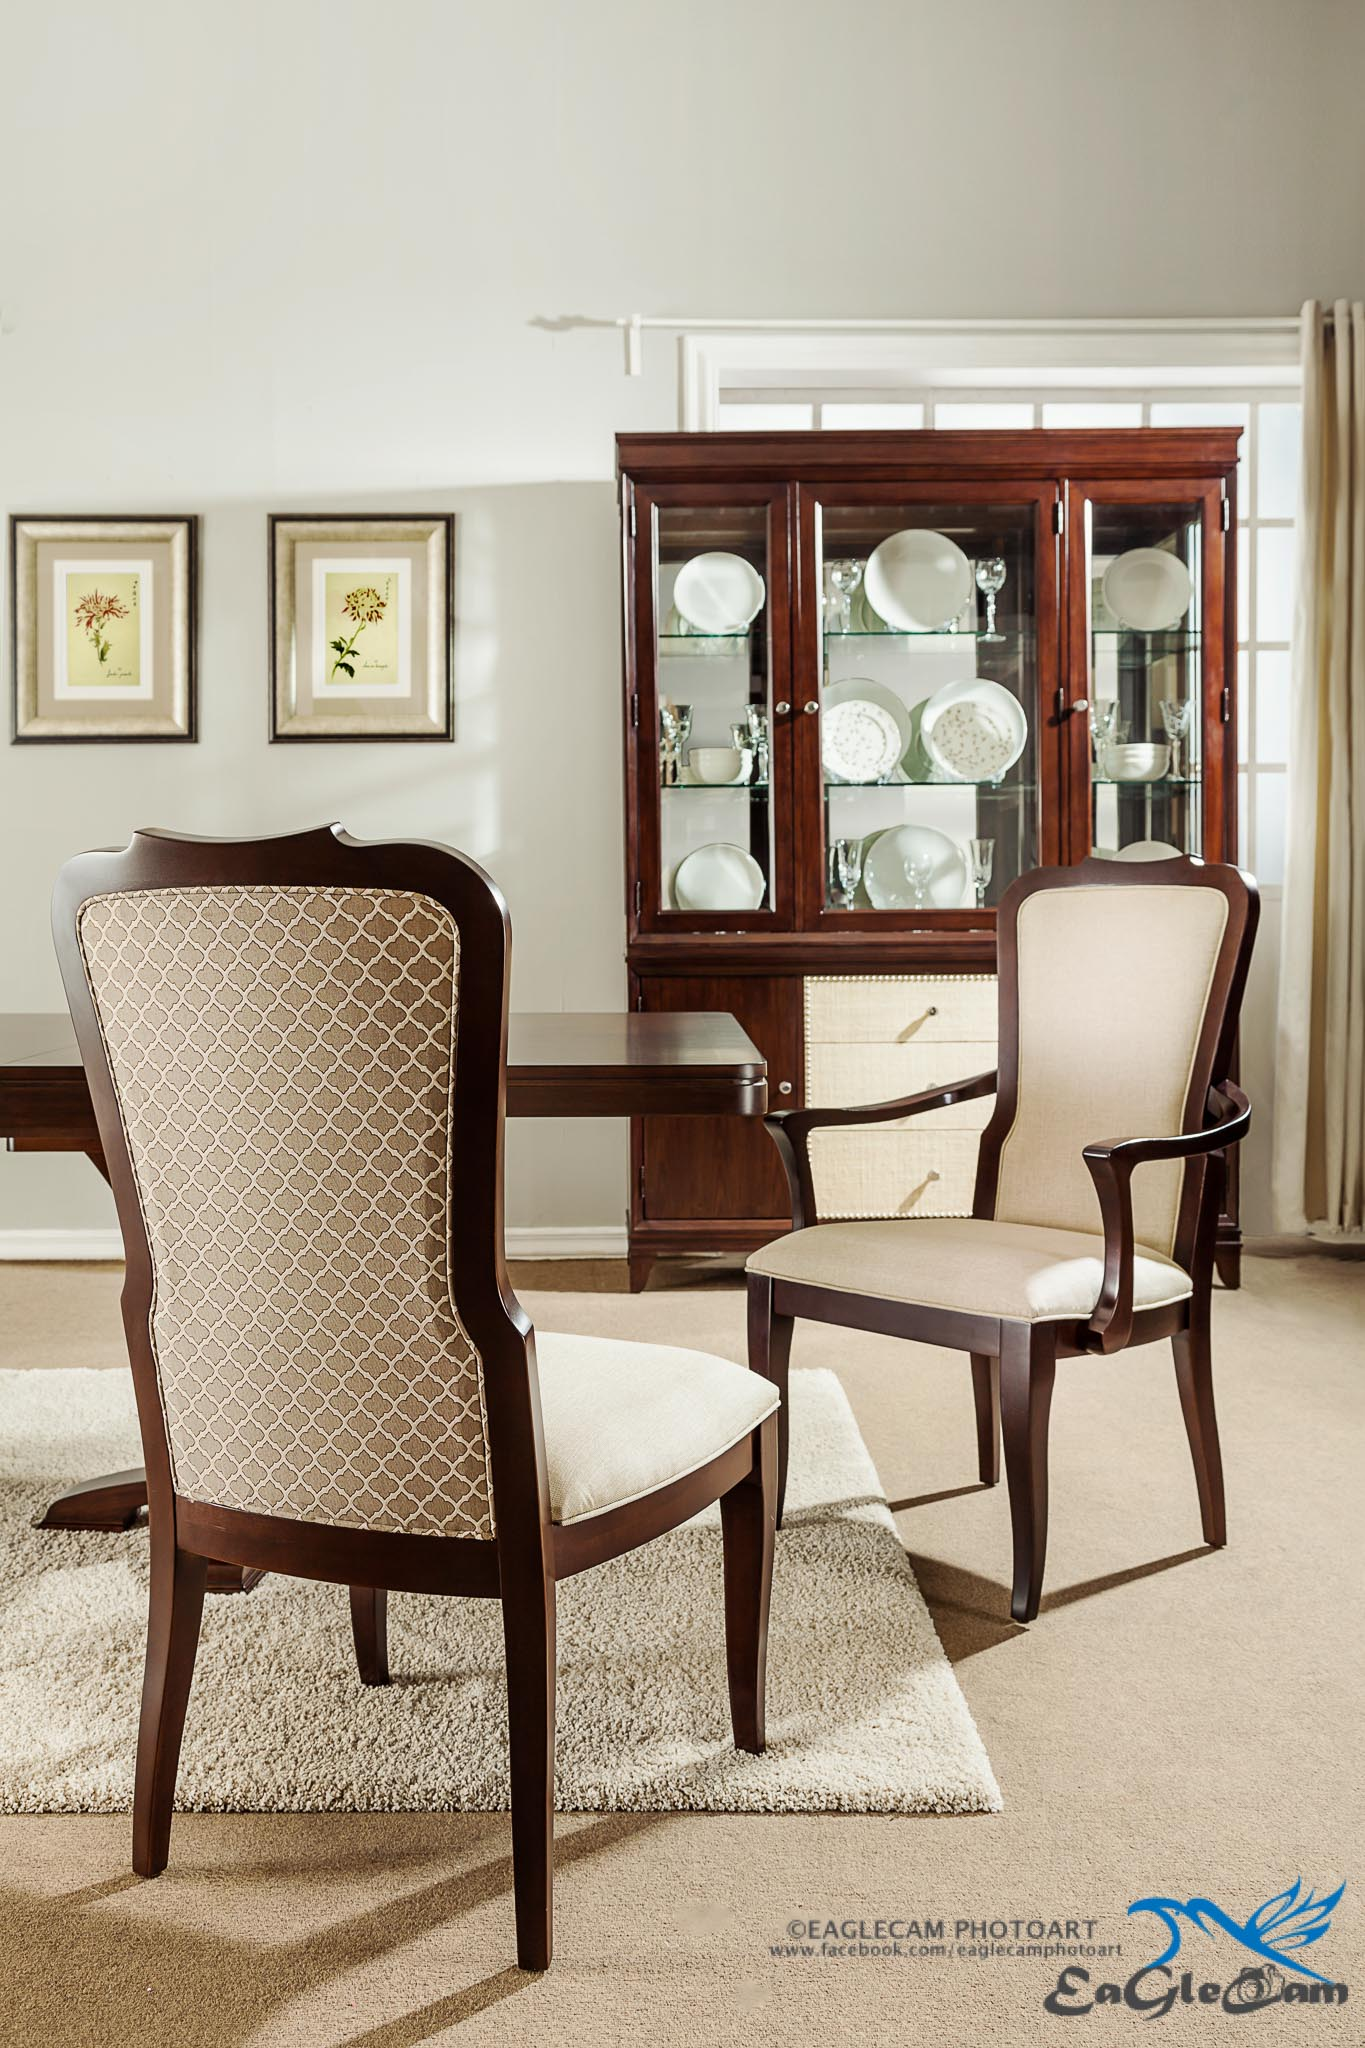 Furniture Photography_6